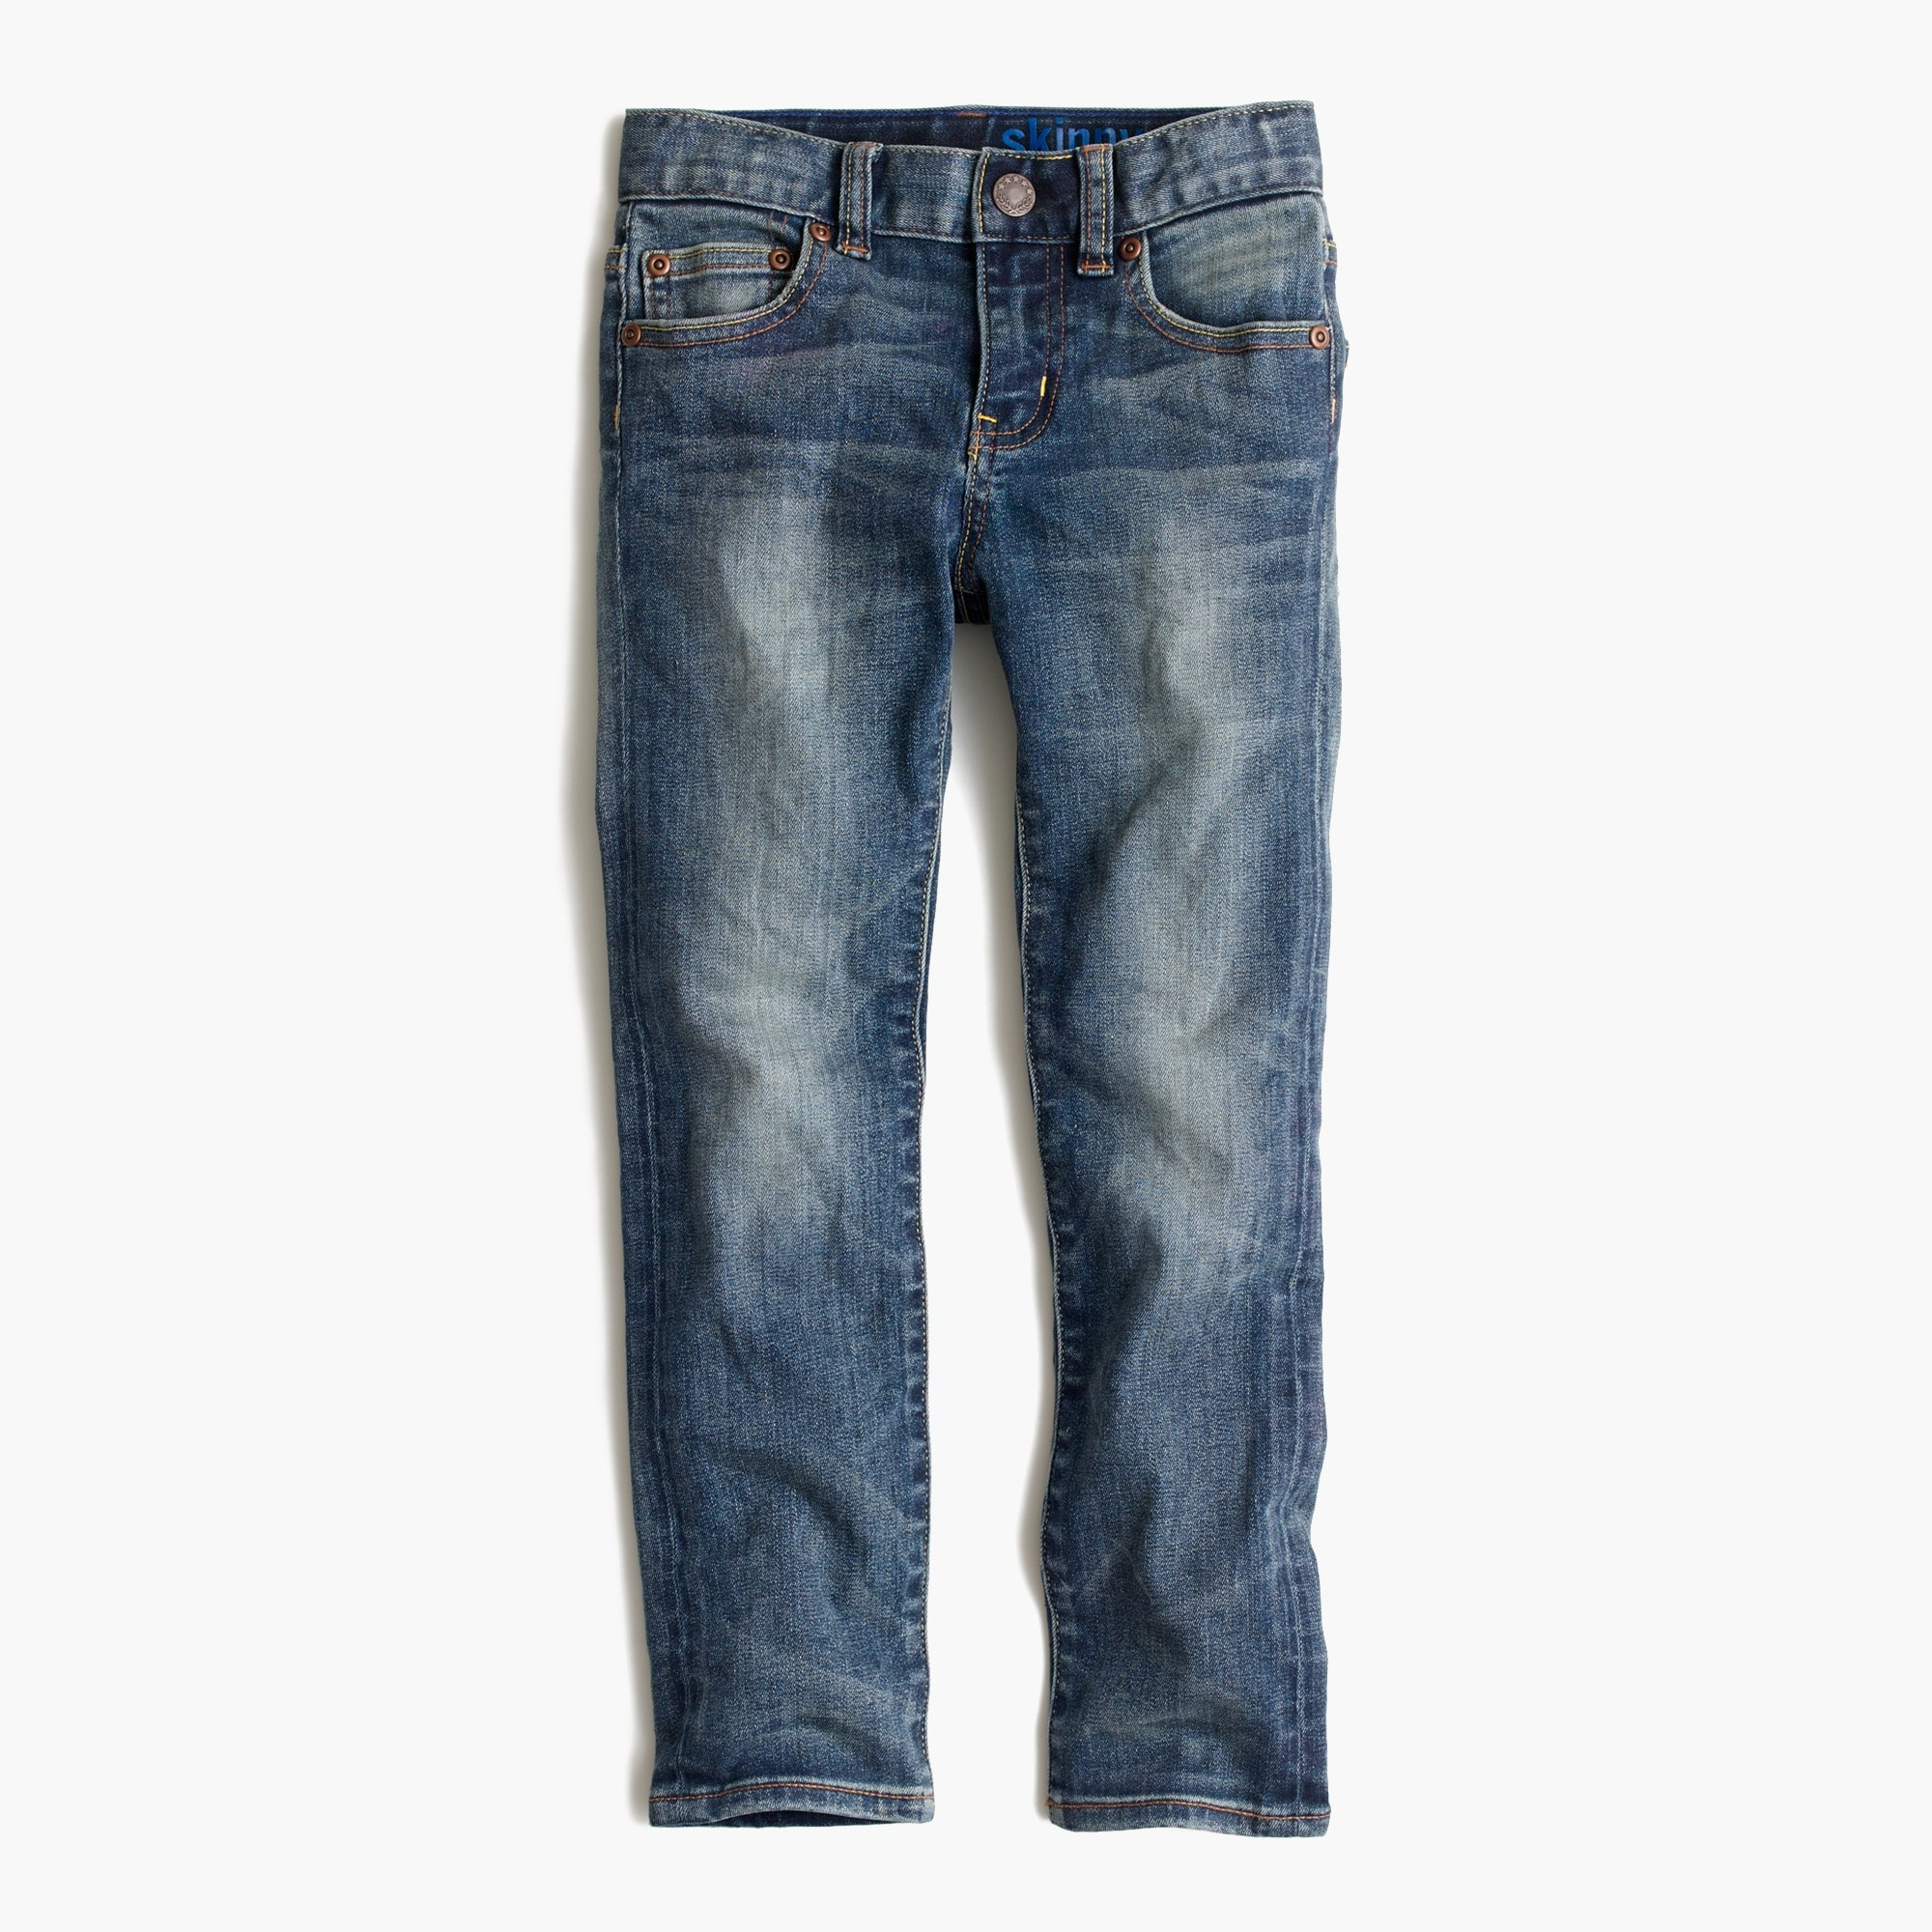 Image 1 for Boys' vintage wash jean in stretch skinny fit